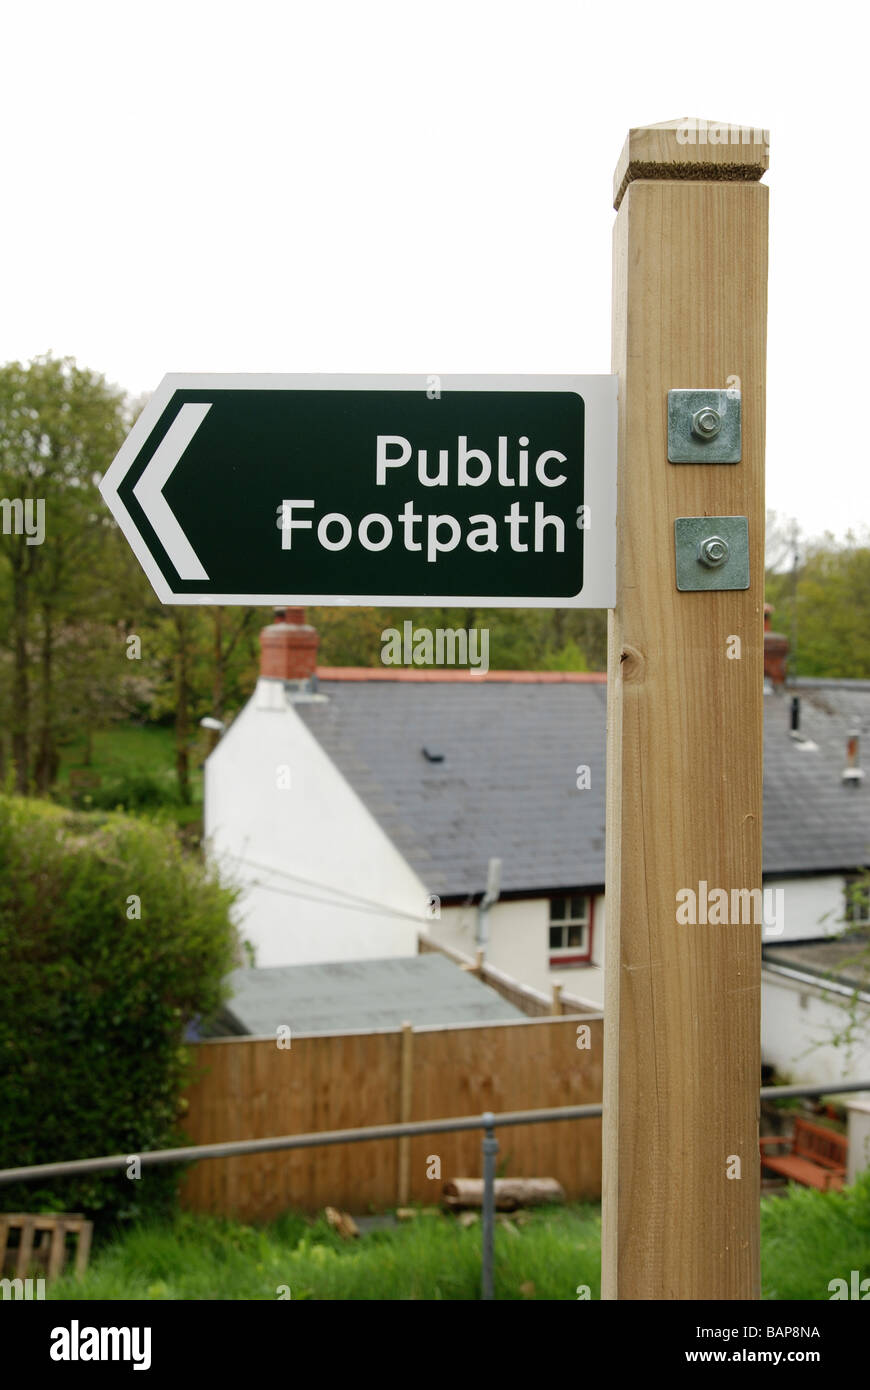 a public footpath sign in gloucester,uk - Stock Image